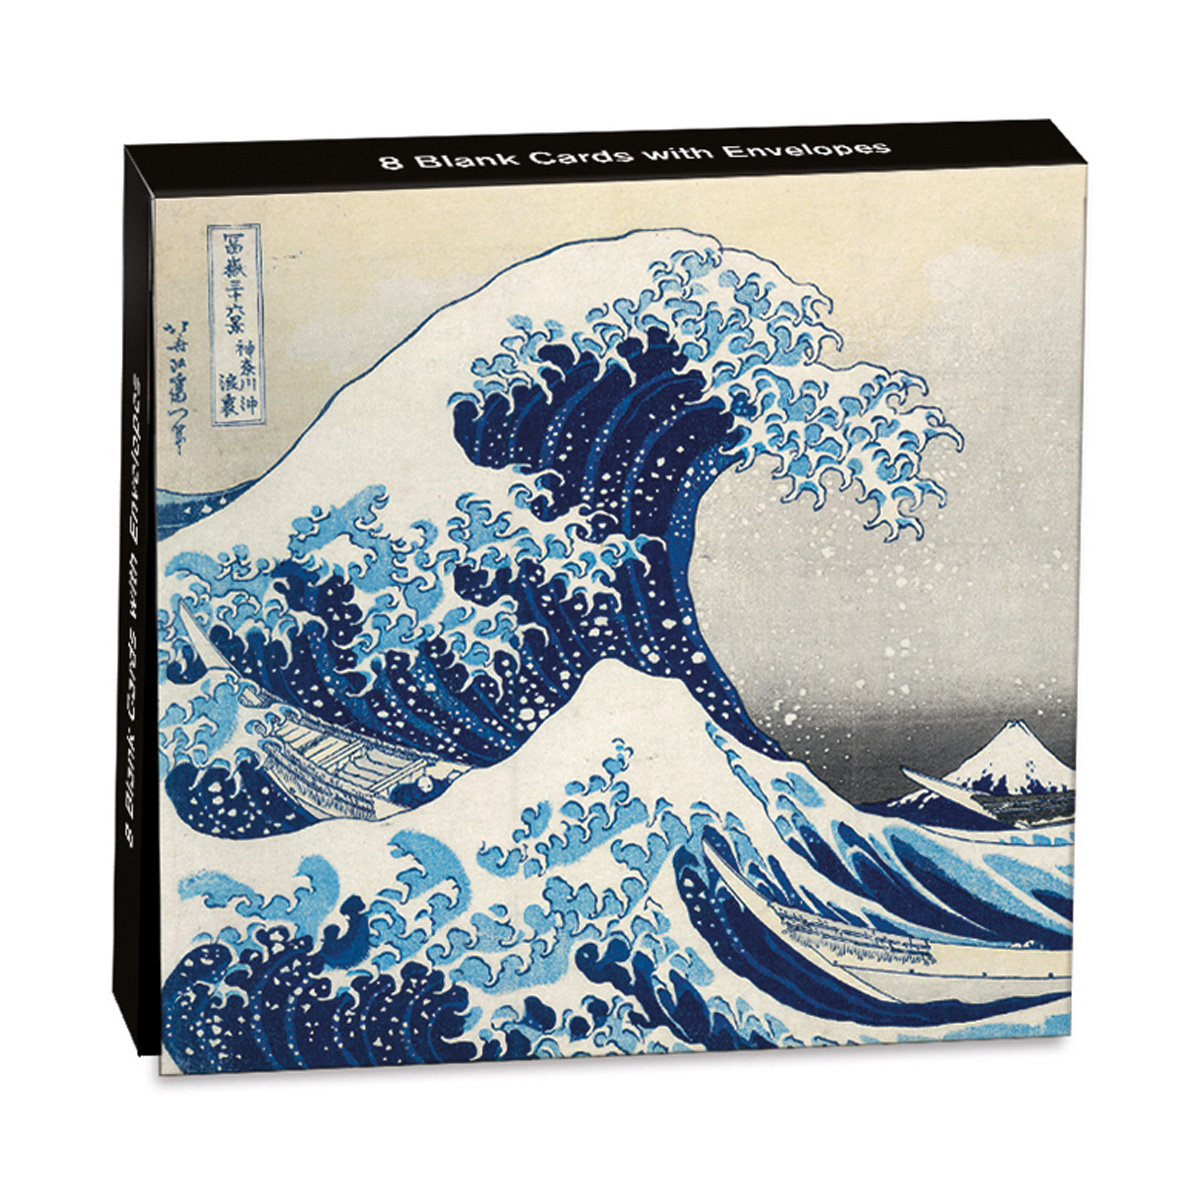 'The Great Wave' notecards by Museums & Galleries.